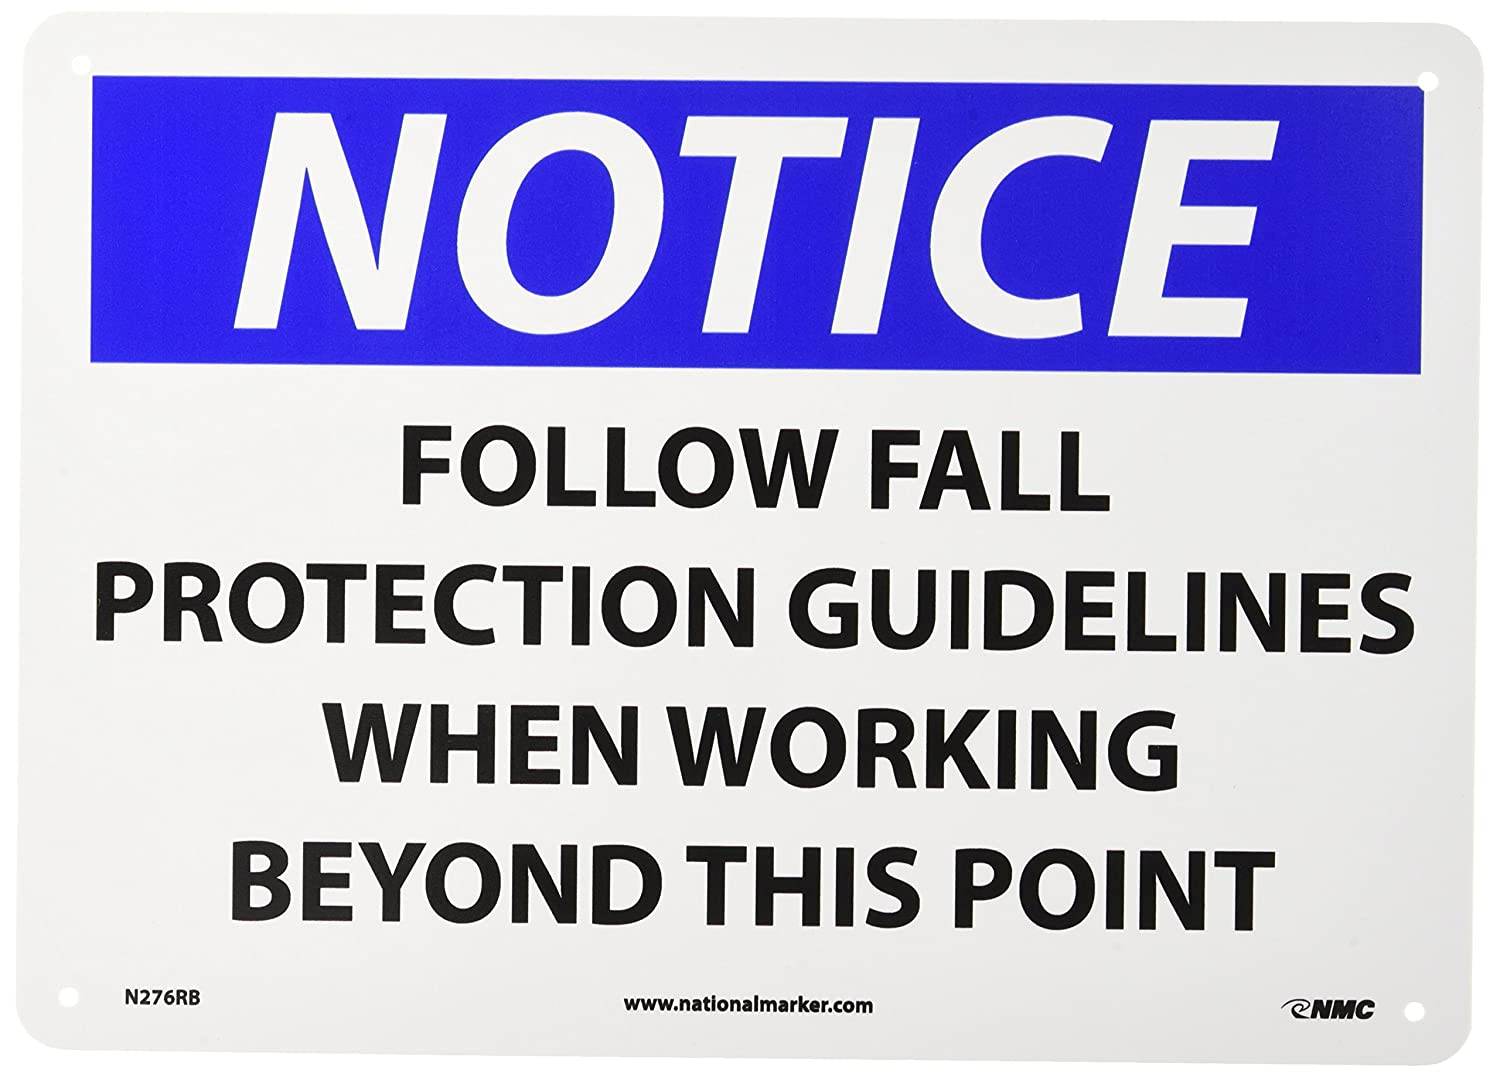 Legend NOTICE 14 Length x 10 Height NMC N276RB OSHA Sign FOLLOW FALL PROTECTION GUIDELINES WHEN WORKING BEYOND THIS POINT Black//Blue on White Rigid Plastic